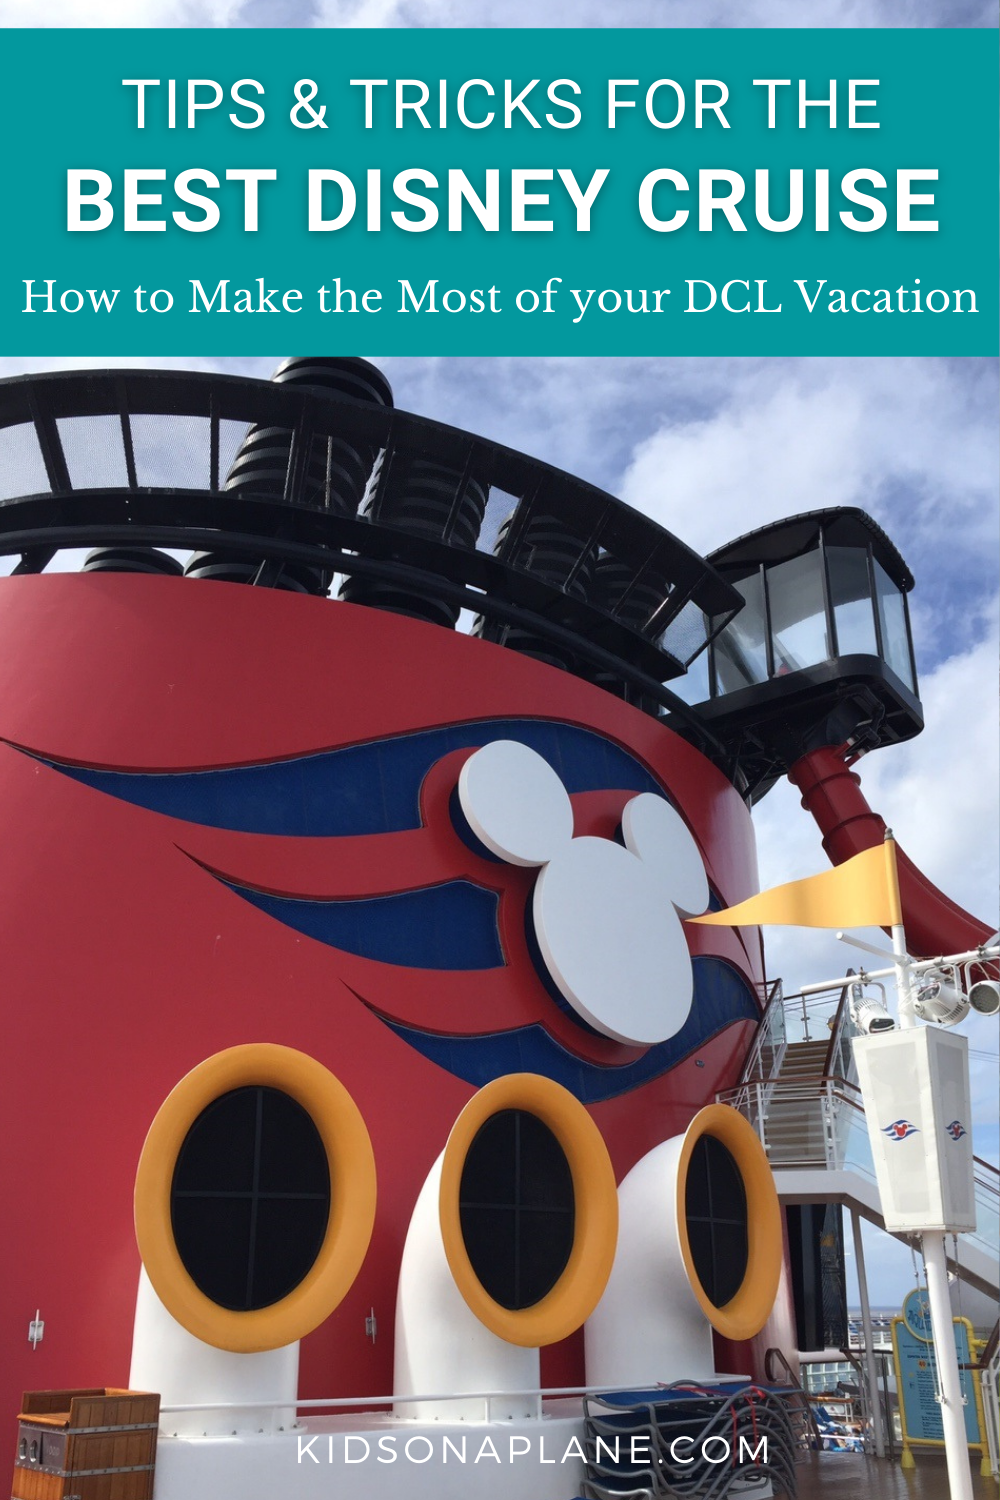 How to Plan the Best Disney Cruise - Tips and tricks on how to make the most of your DCL vacation